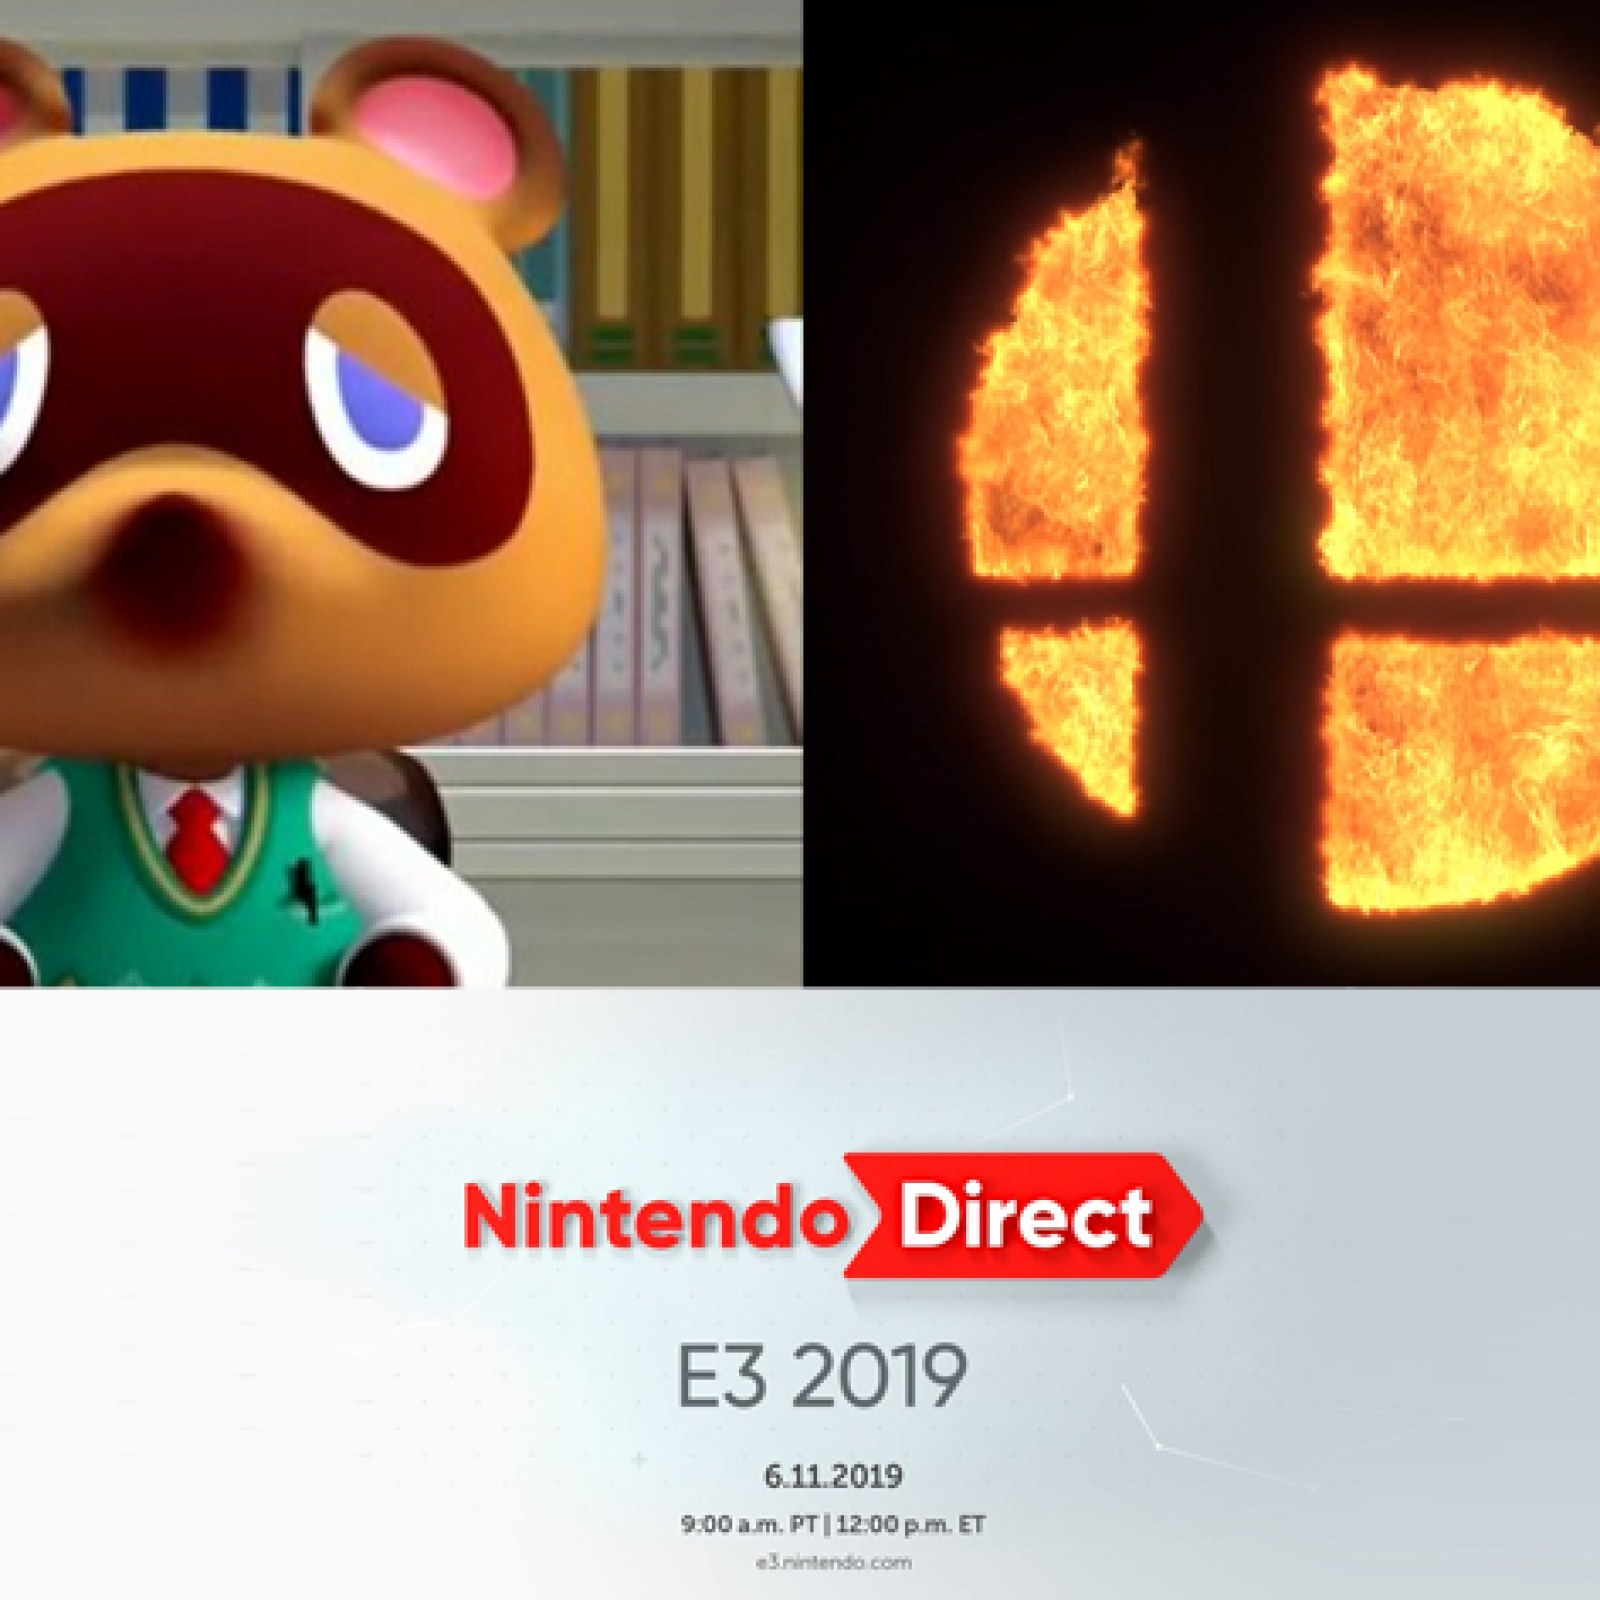 Nintendo Direct E3 Predictions: 'Smash Ultimate' DLC, 'Animal